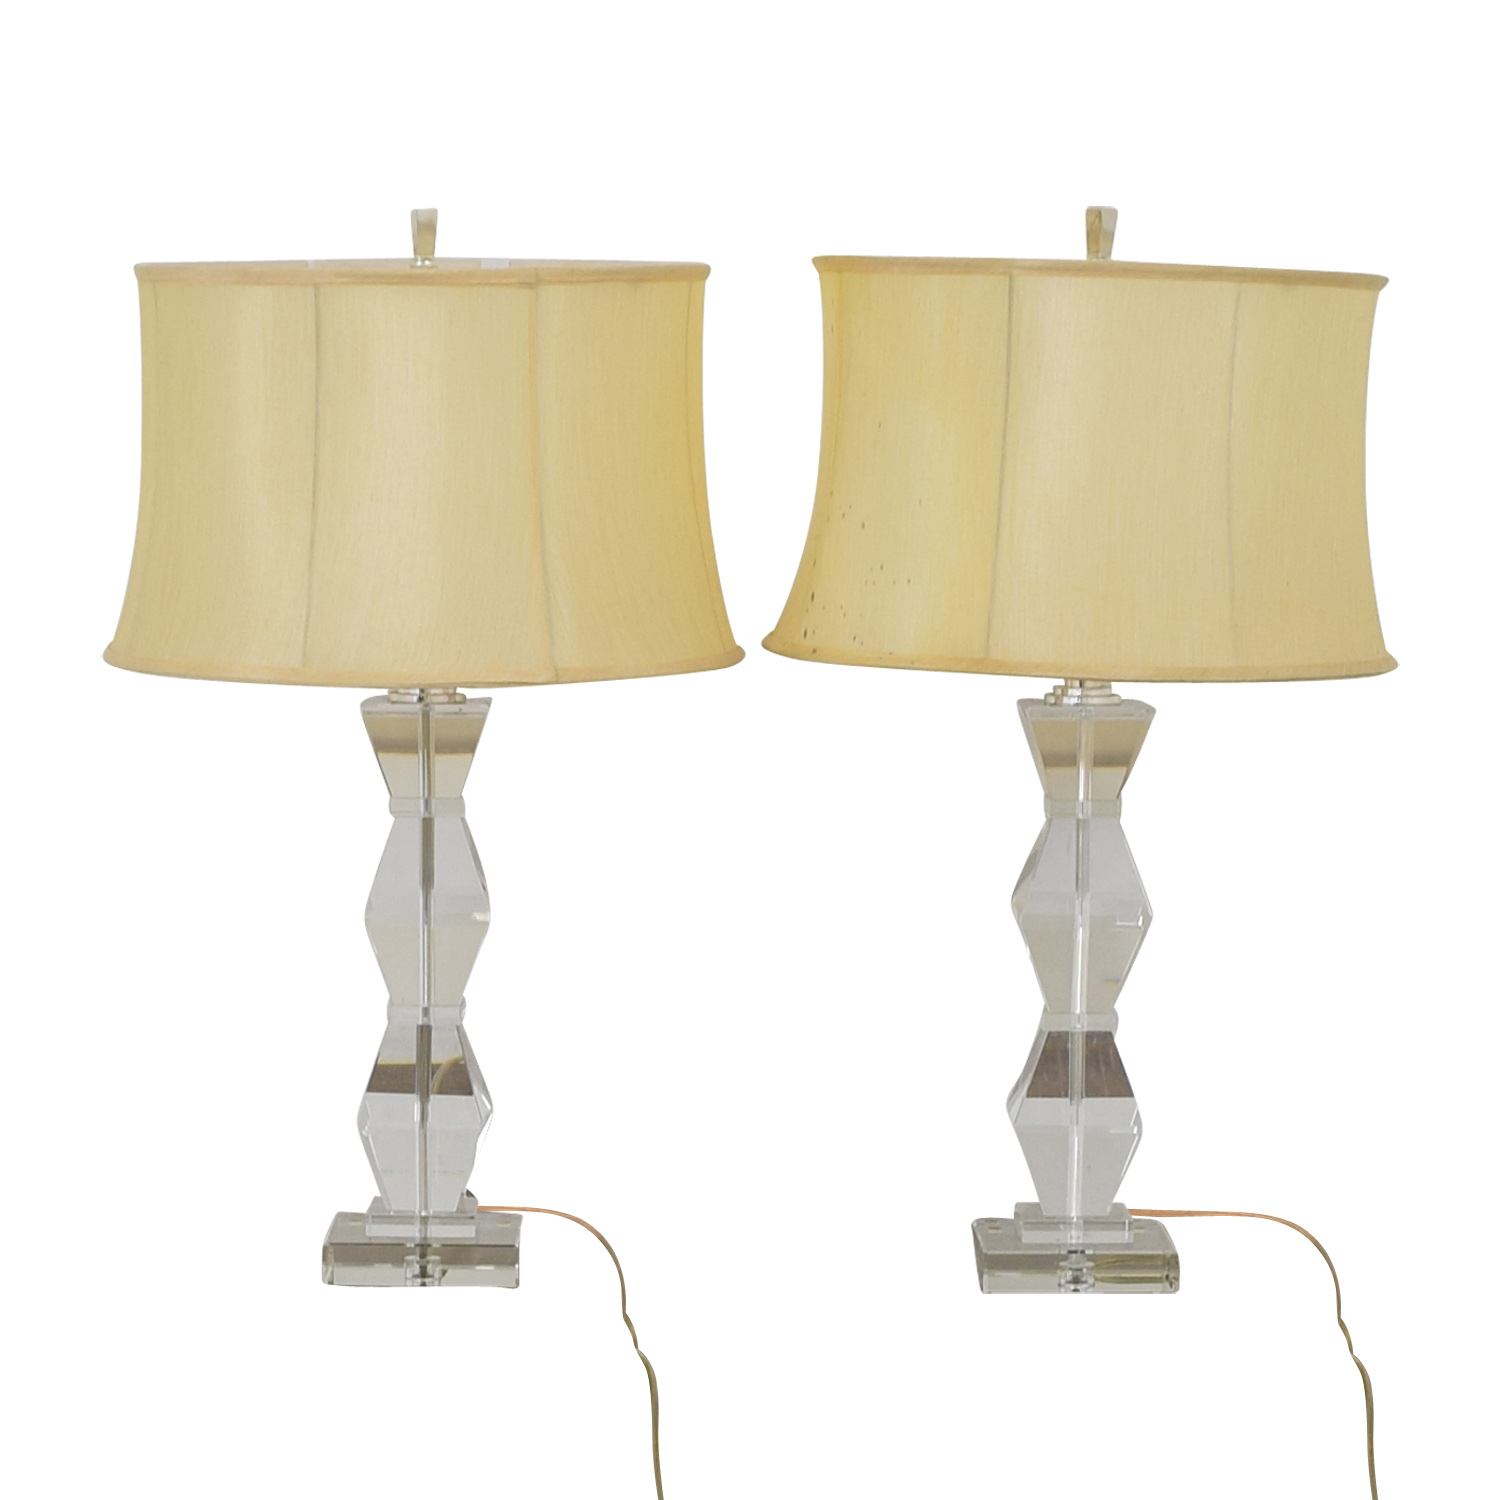 buy Ethan Allen Geometric Crystal Table Lamps Ethan Allen Decor